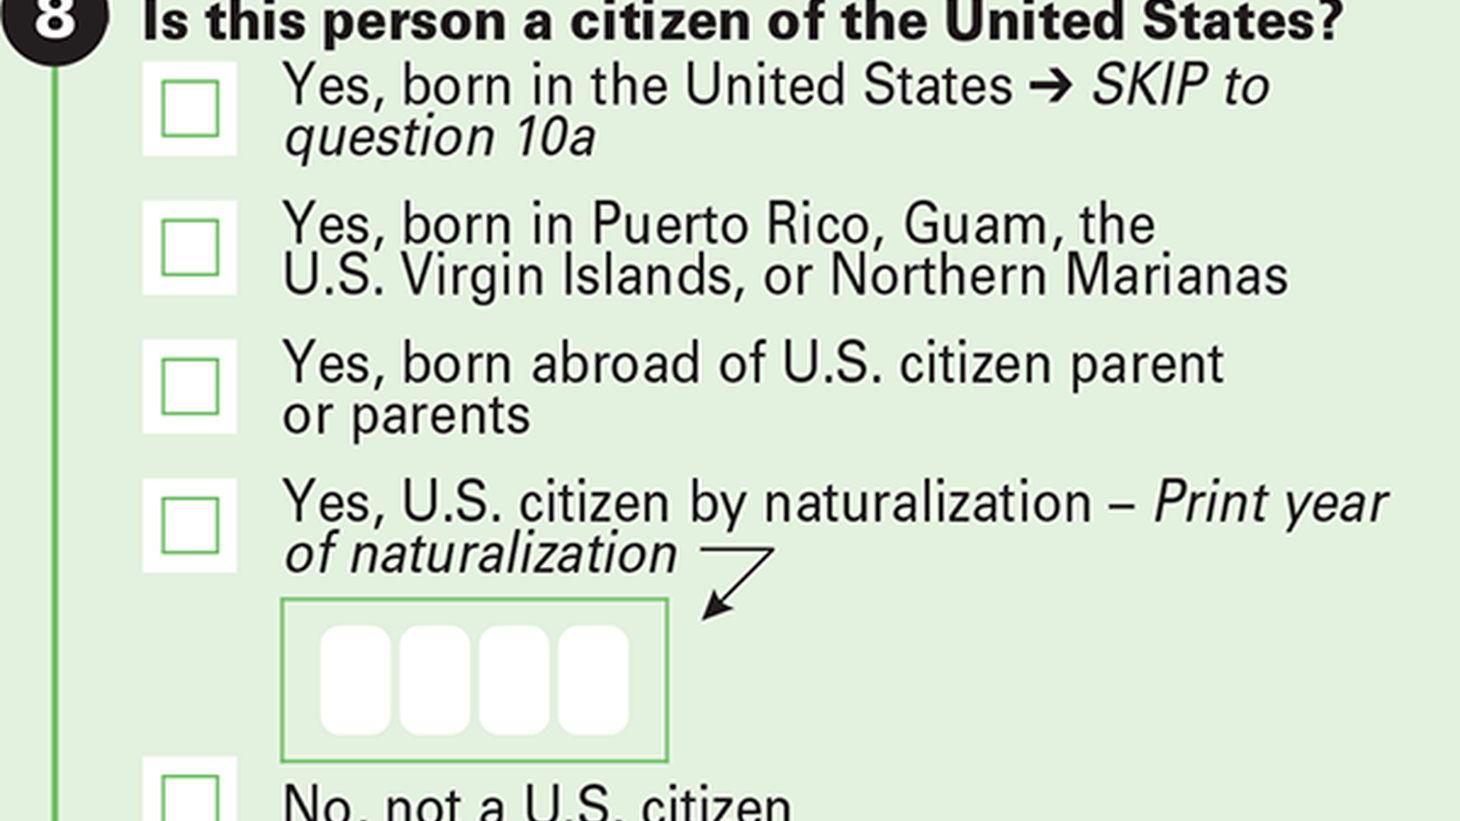 Latest US Census calling citizenship into question.